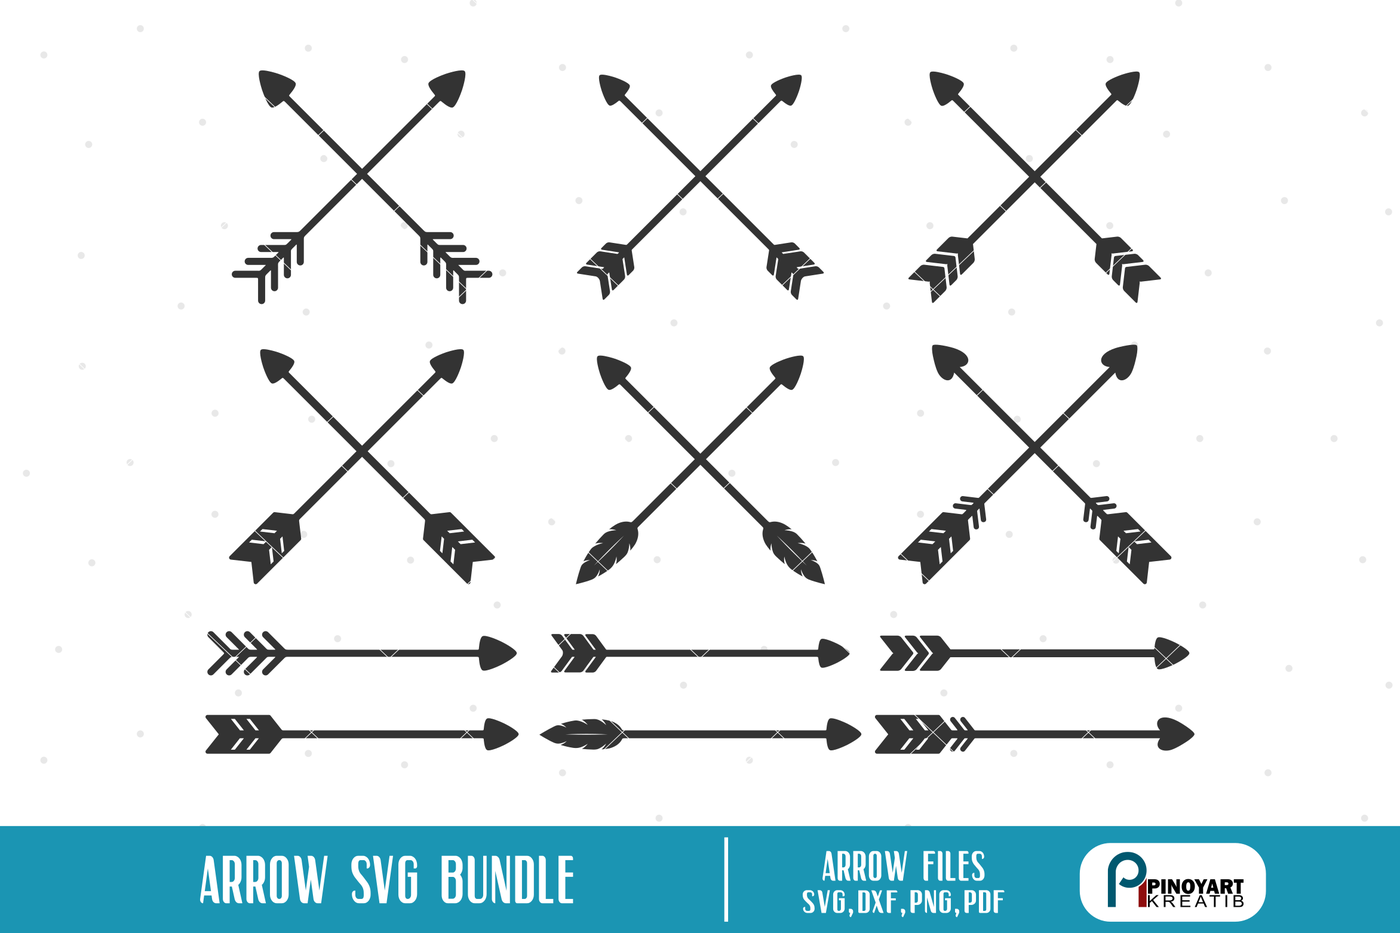 Arrow Svg Crossed Arrow Svg Arrow Clip Art Svg Files For Cricut